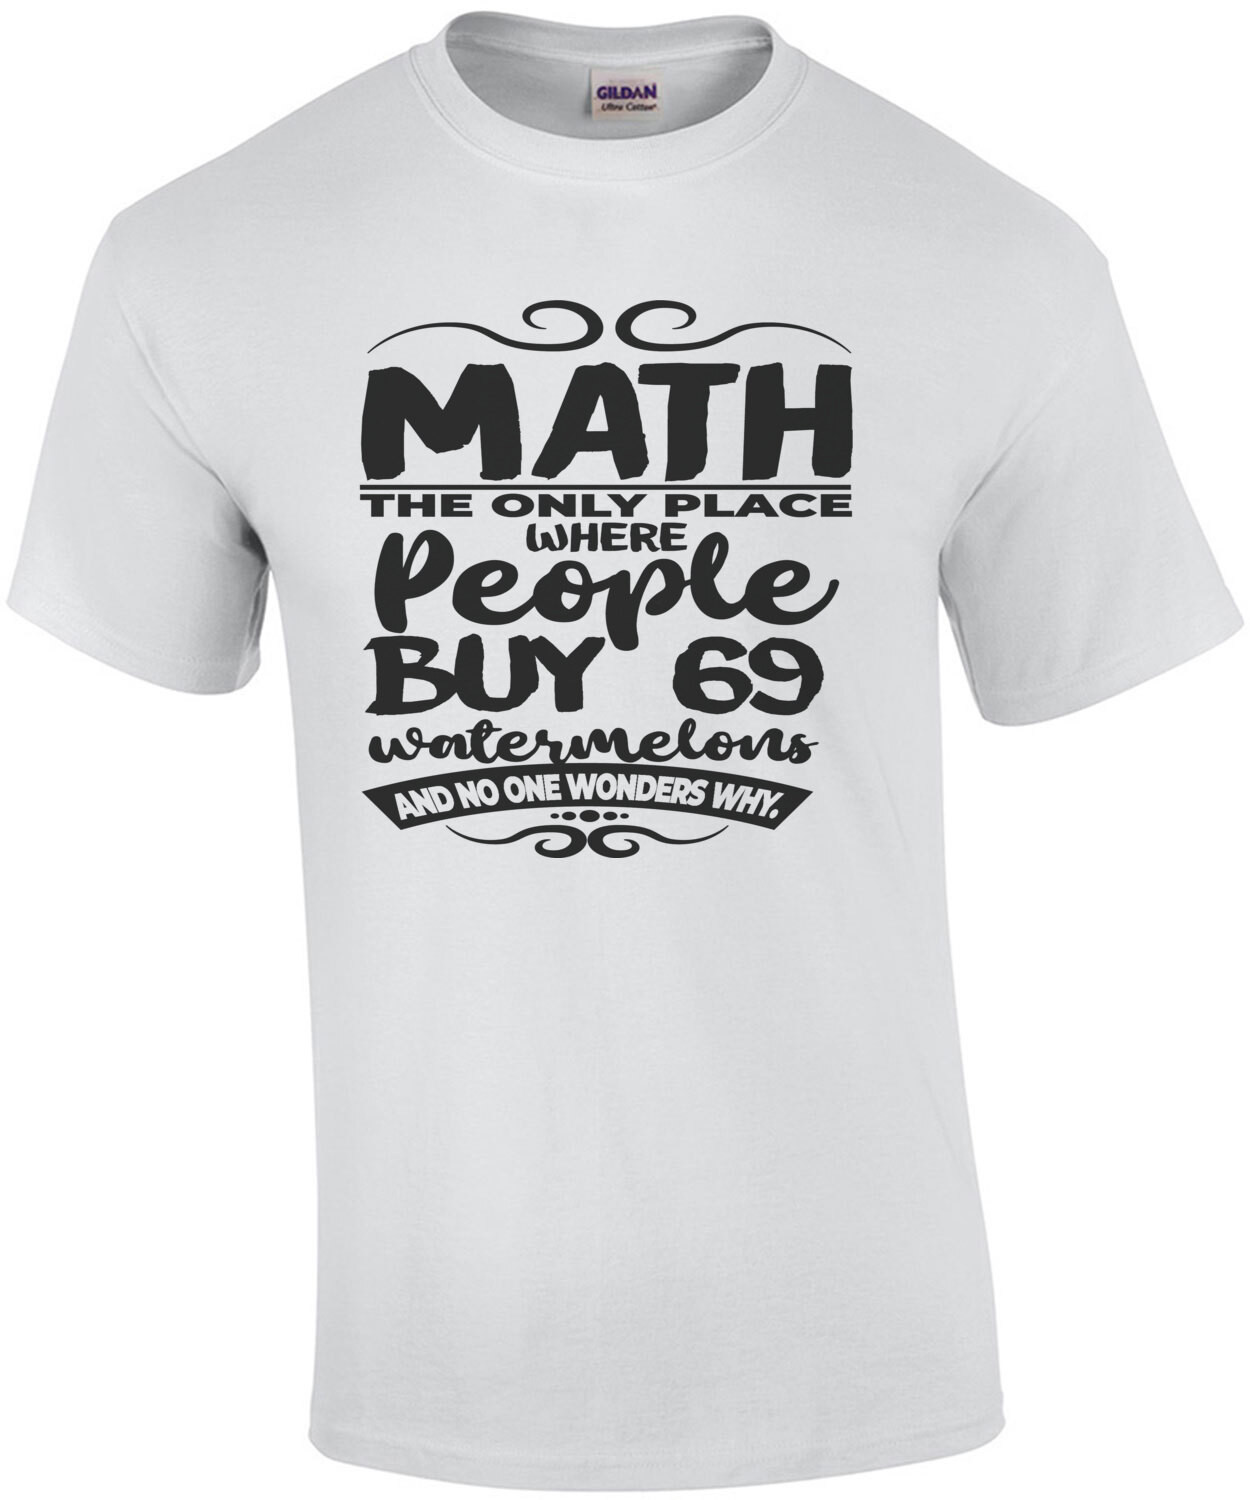 Math - the only place where people buy 69 watermelons and no one wonders why. Funny Math T-Shirt